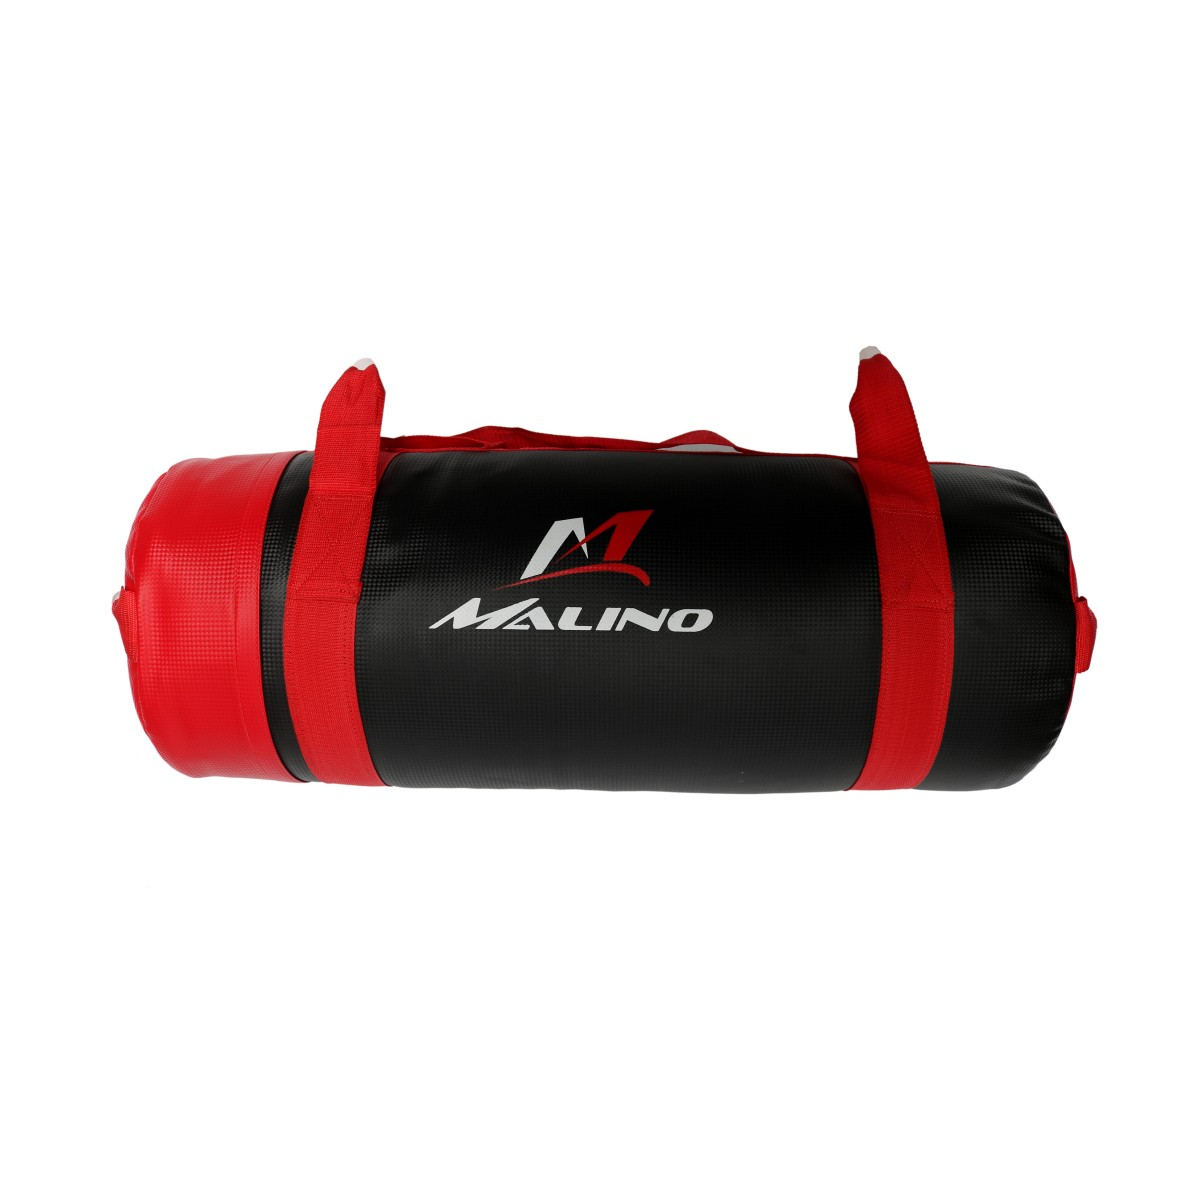 Malino Premium Weight Lifting Sand Bag Black Red